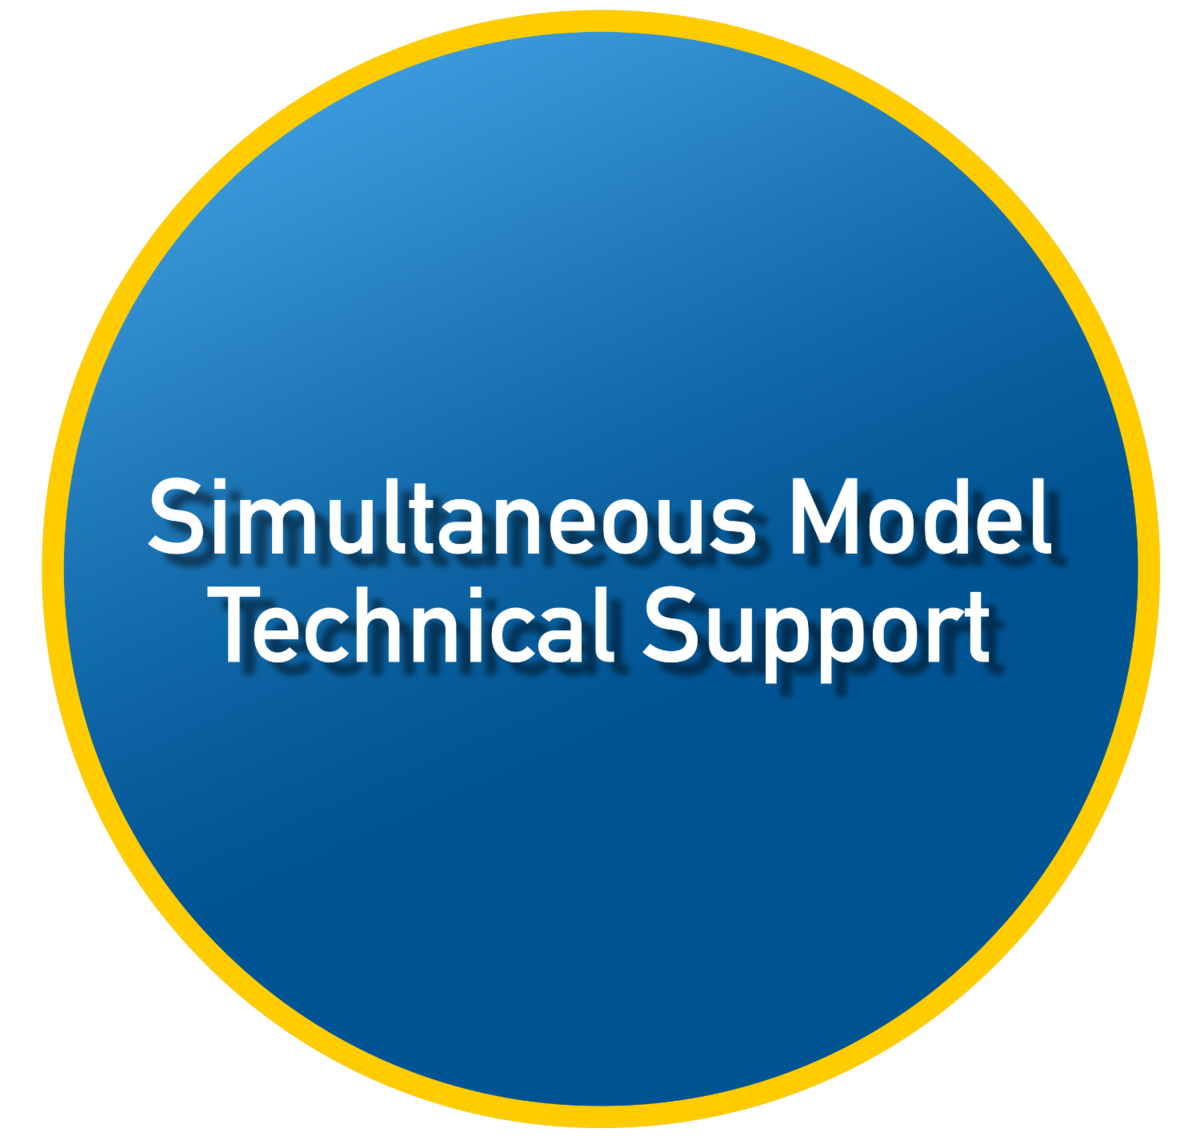 Simultaneous Model Technical Support logo